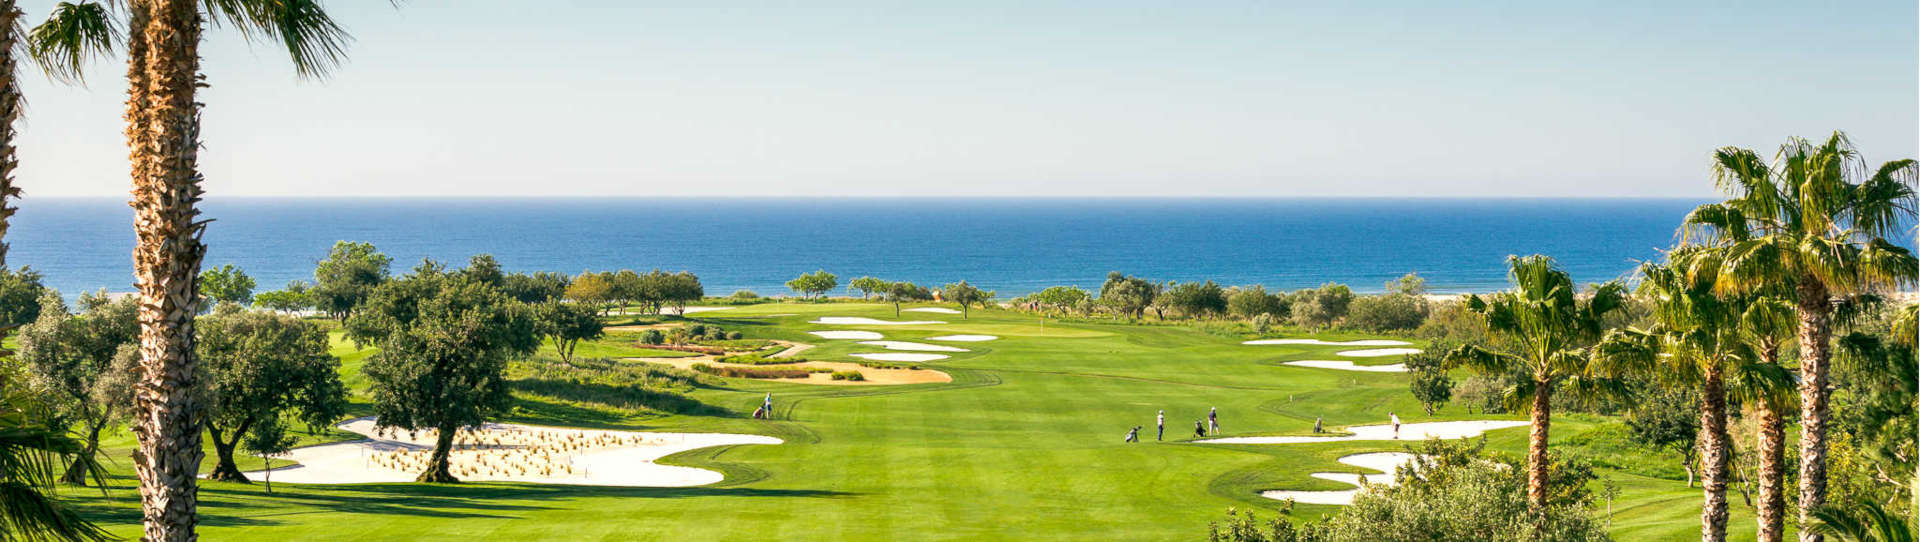 Quinta da Ria Golf Course - Photo 3